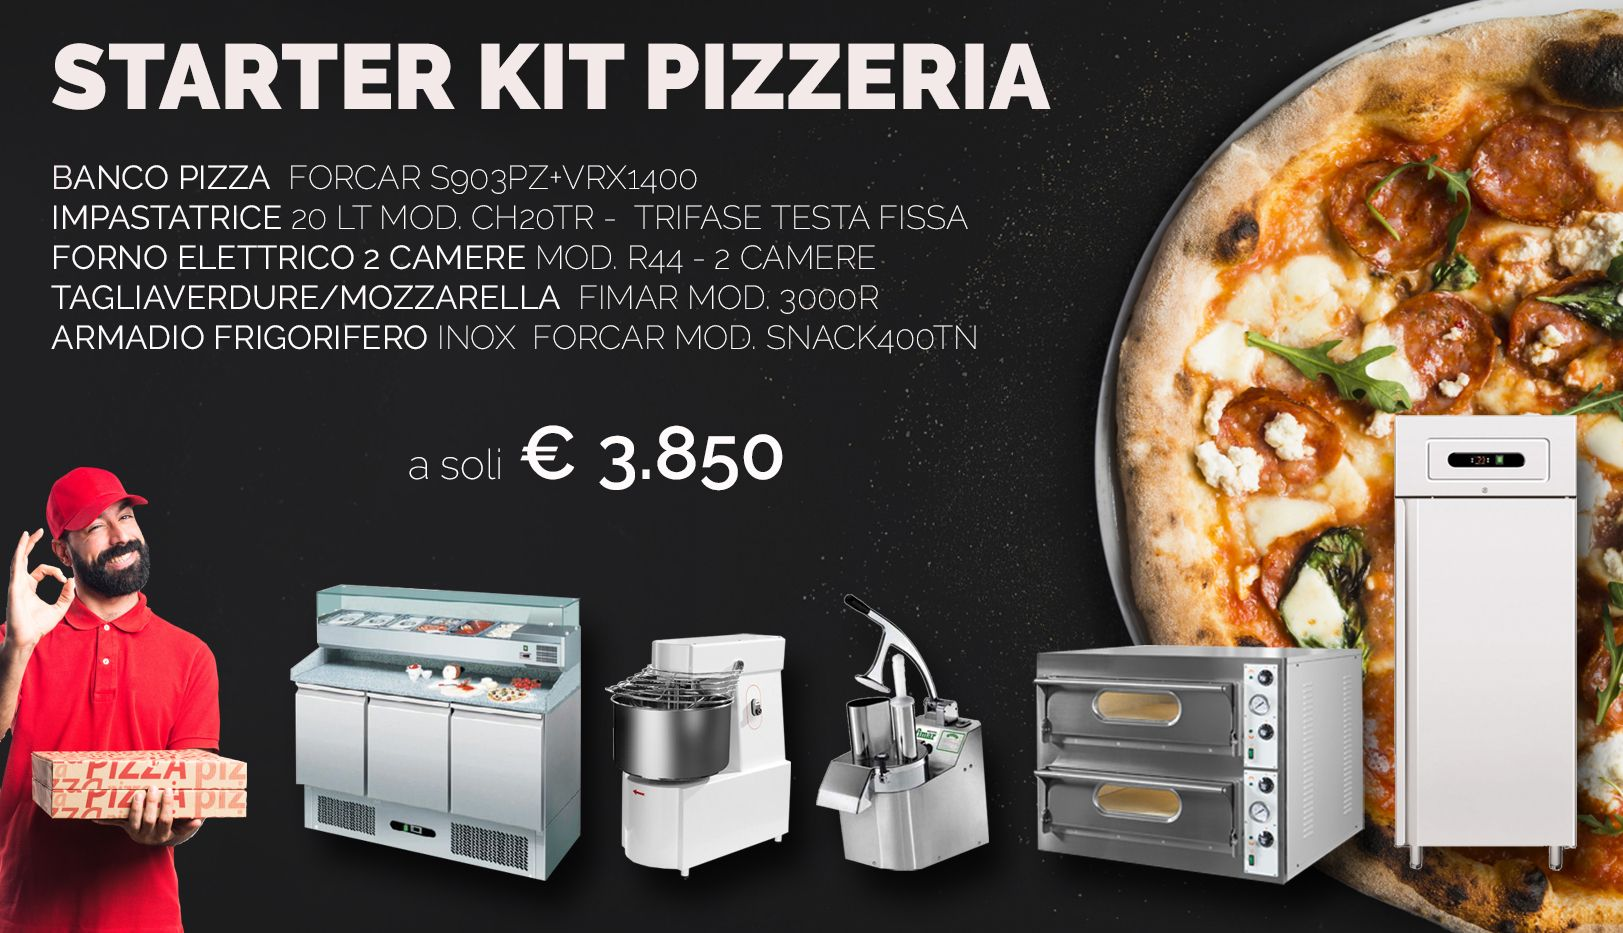 http://www.chefstore.it/9-attrezzature-per-pizzeria